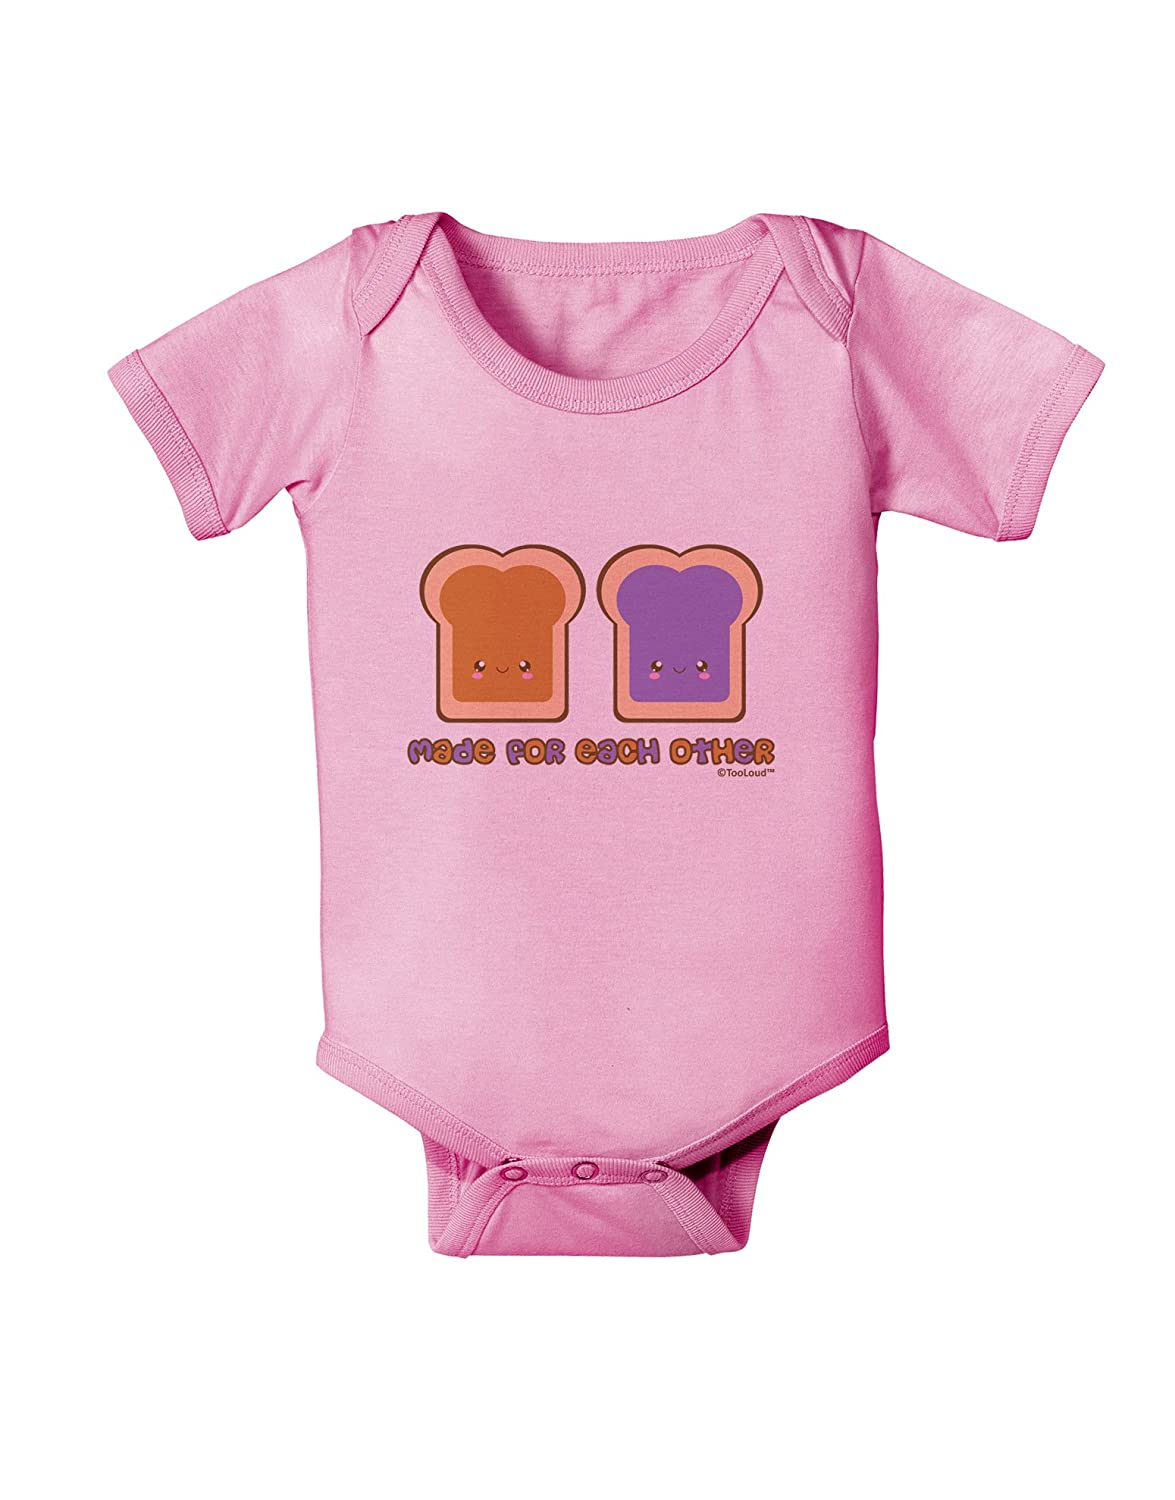 TooLoud Cute PB and J Design Made for Each Other Baby Romper Bodysuit